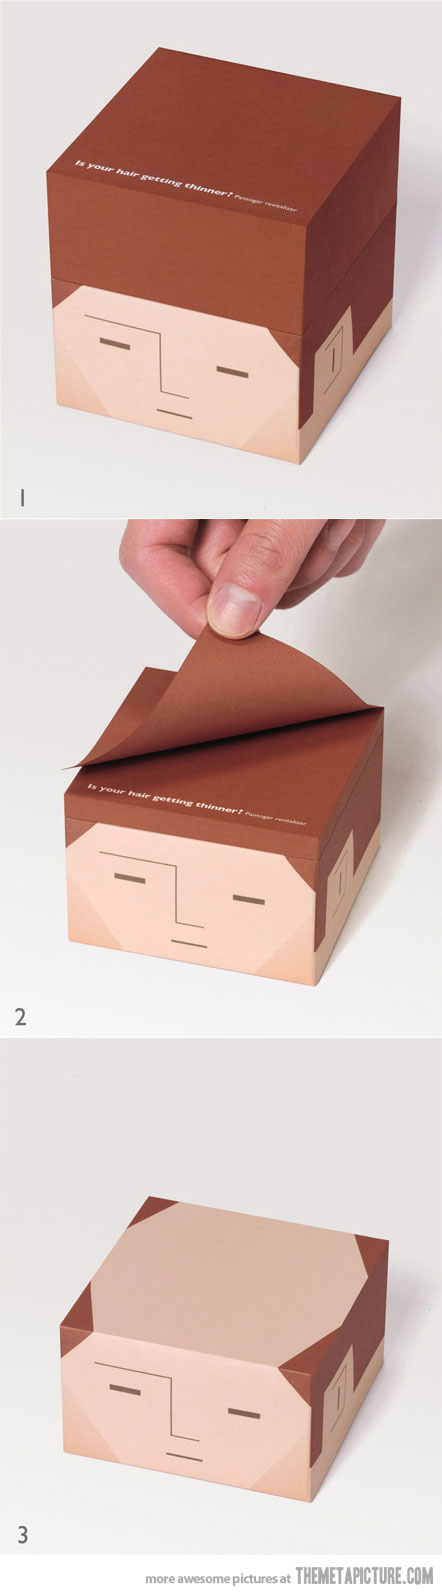 Balding post-it notes... I want these to give as stocking stuffers for Christmas!